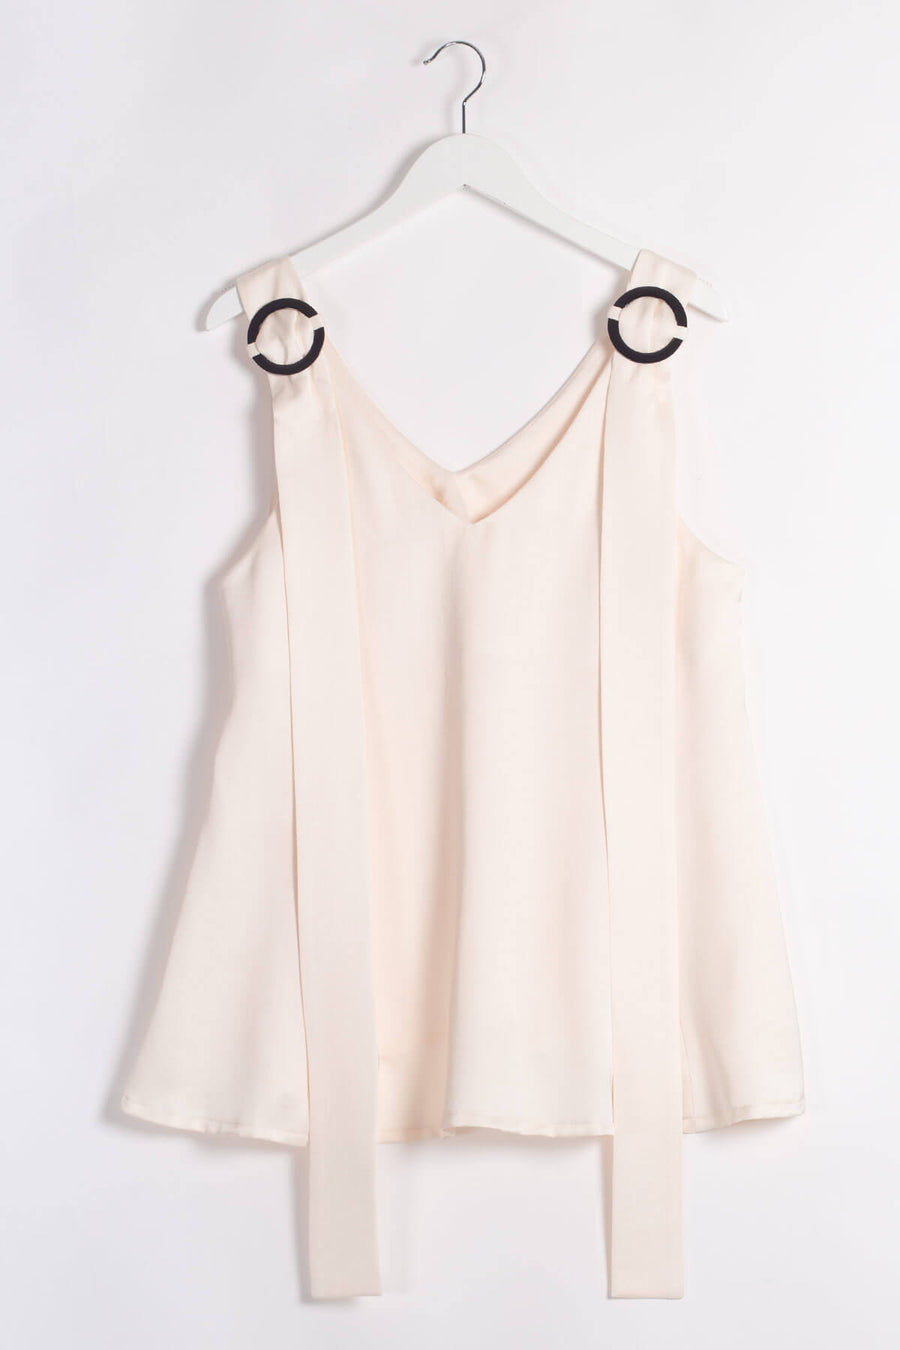 SOFYC Viscose Sleeveless Top - Ivory